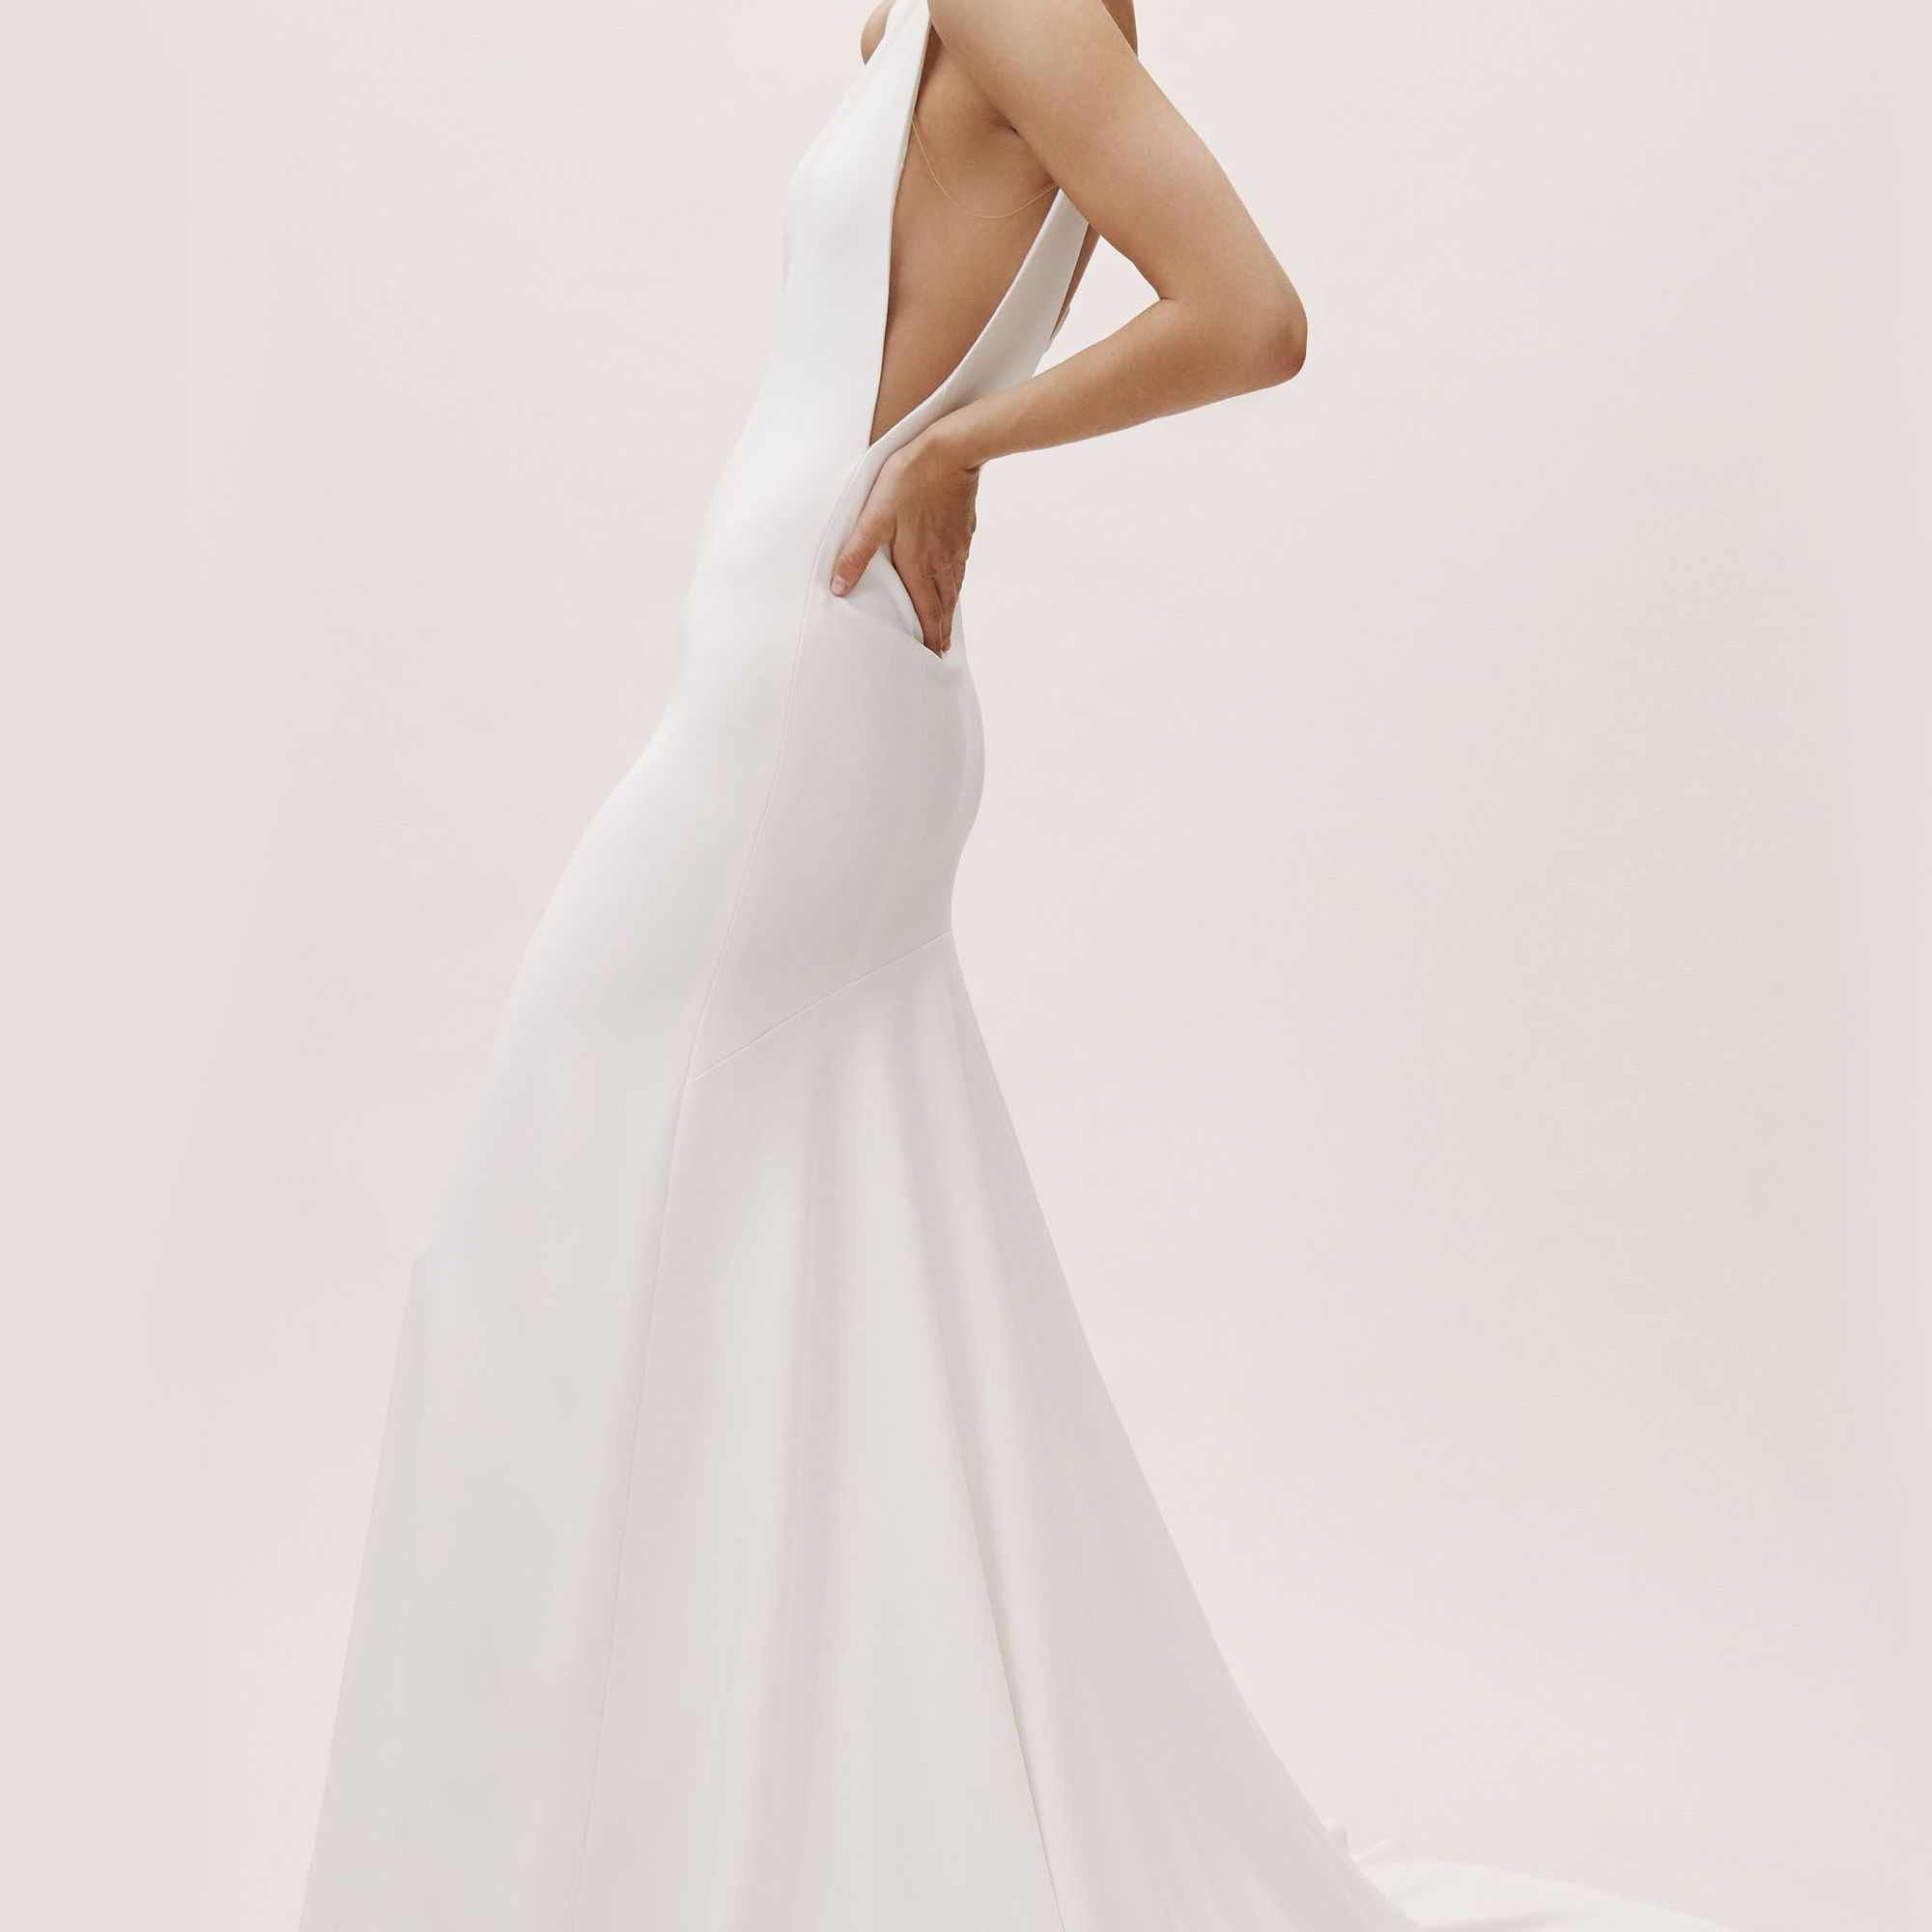 The 30 Best Wedding Dresses Under 1 000 Of 2020,Cocktail Dress Wedding Guest